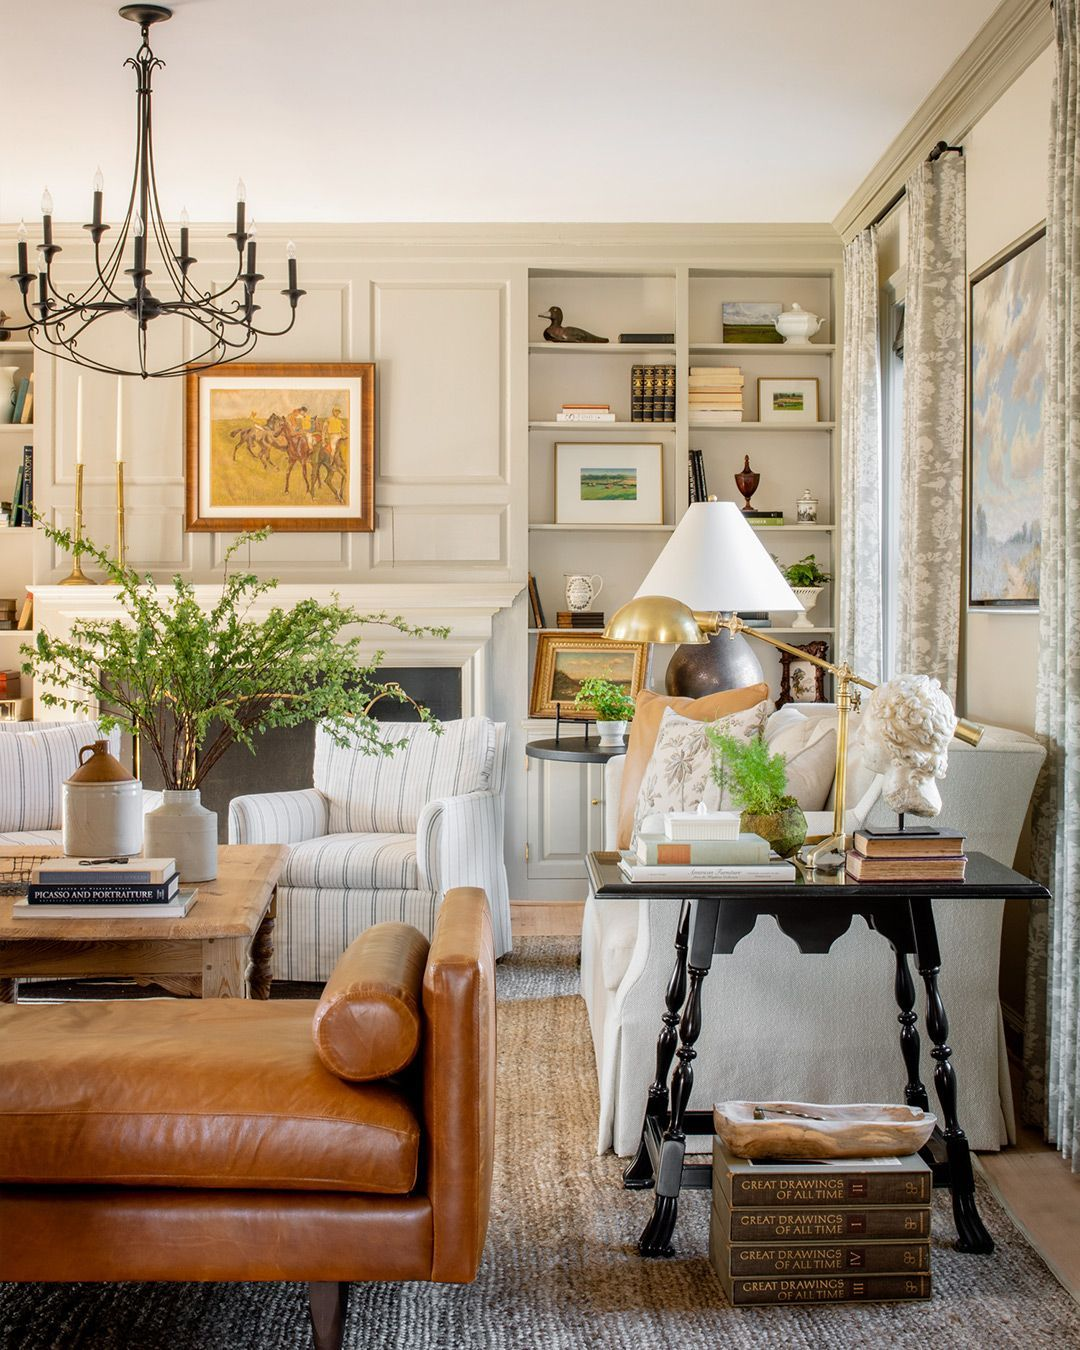 Take A Look Inside The Southern Home January February 2020 Issue This Special Before And Af In 2020 House And Home Magazine Interior Decorating Styles House Interior